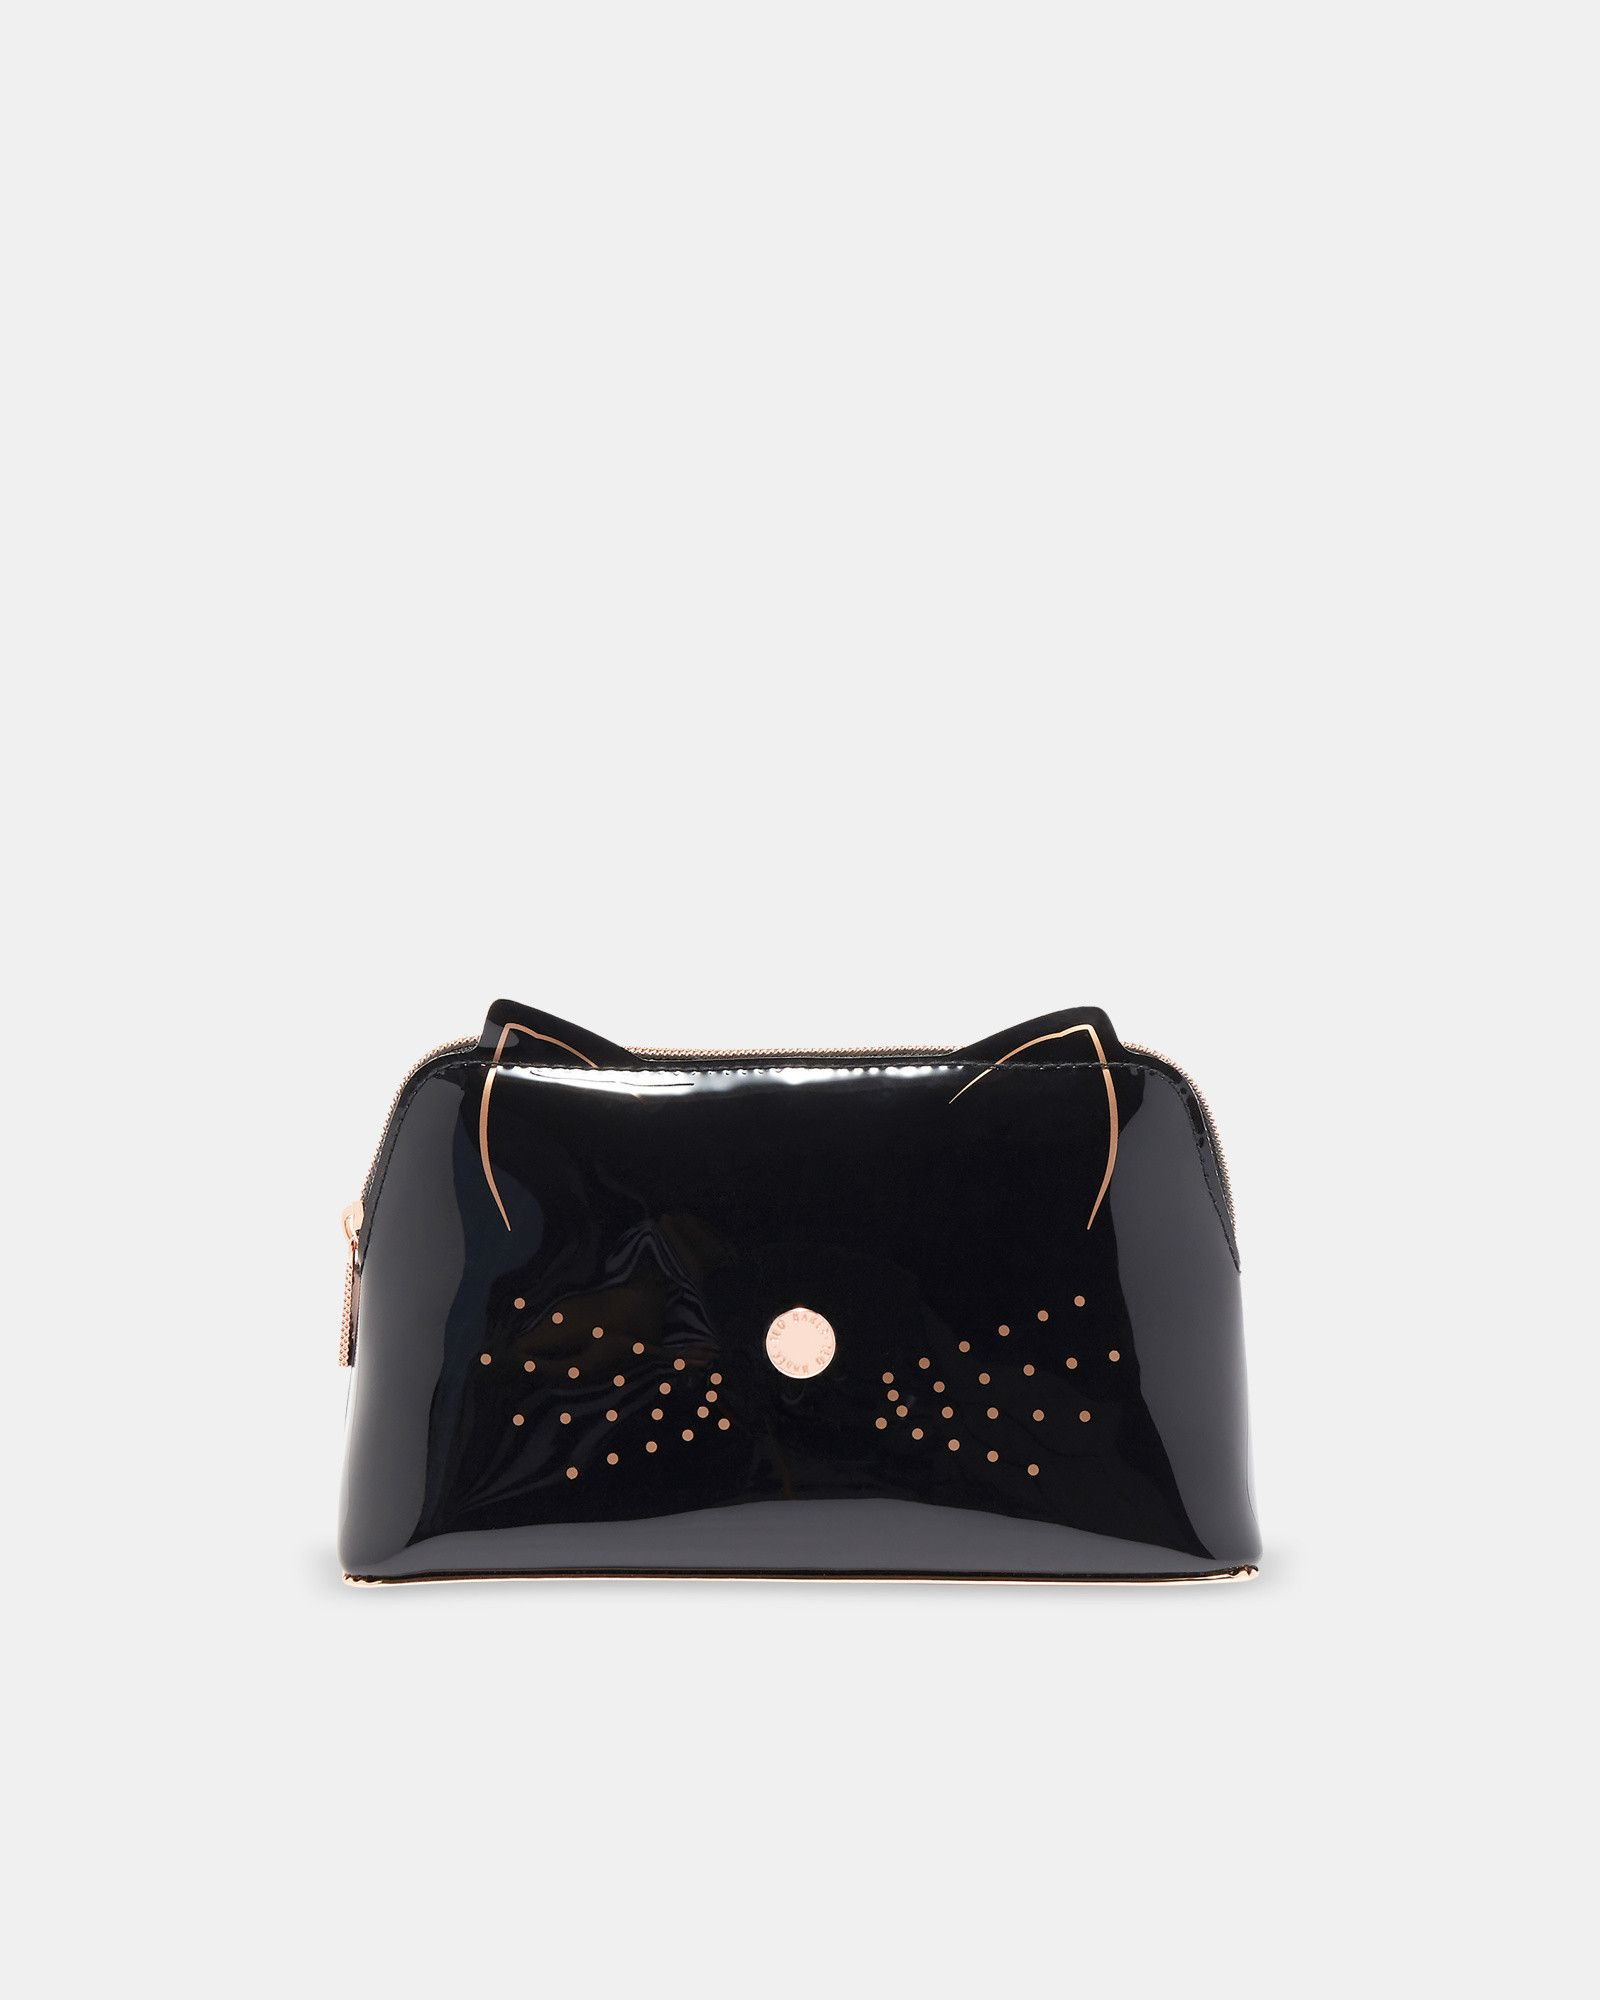 551bc47ae54 MACCOA Cat make up bag #TedToToe | Presents | Bags, Wash bags ...